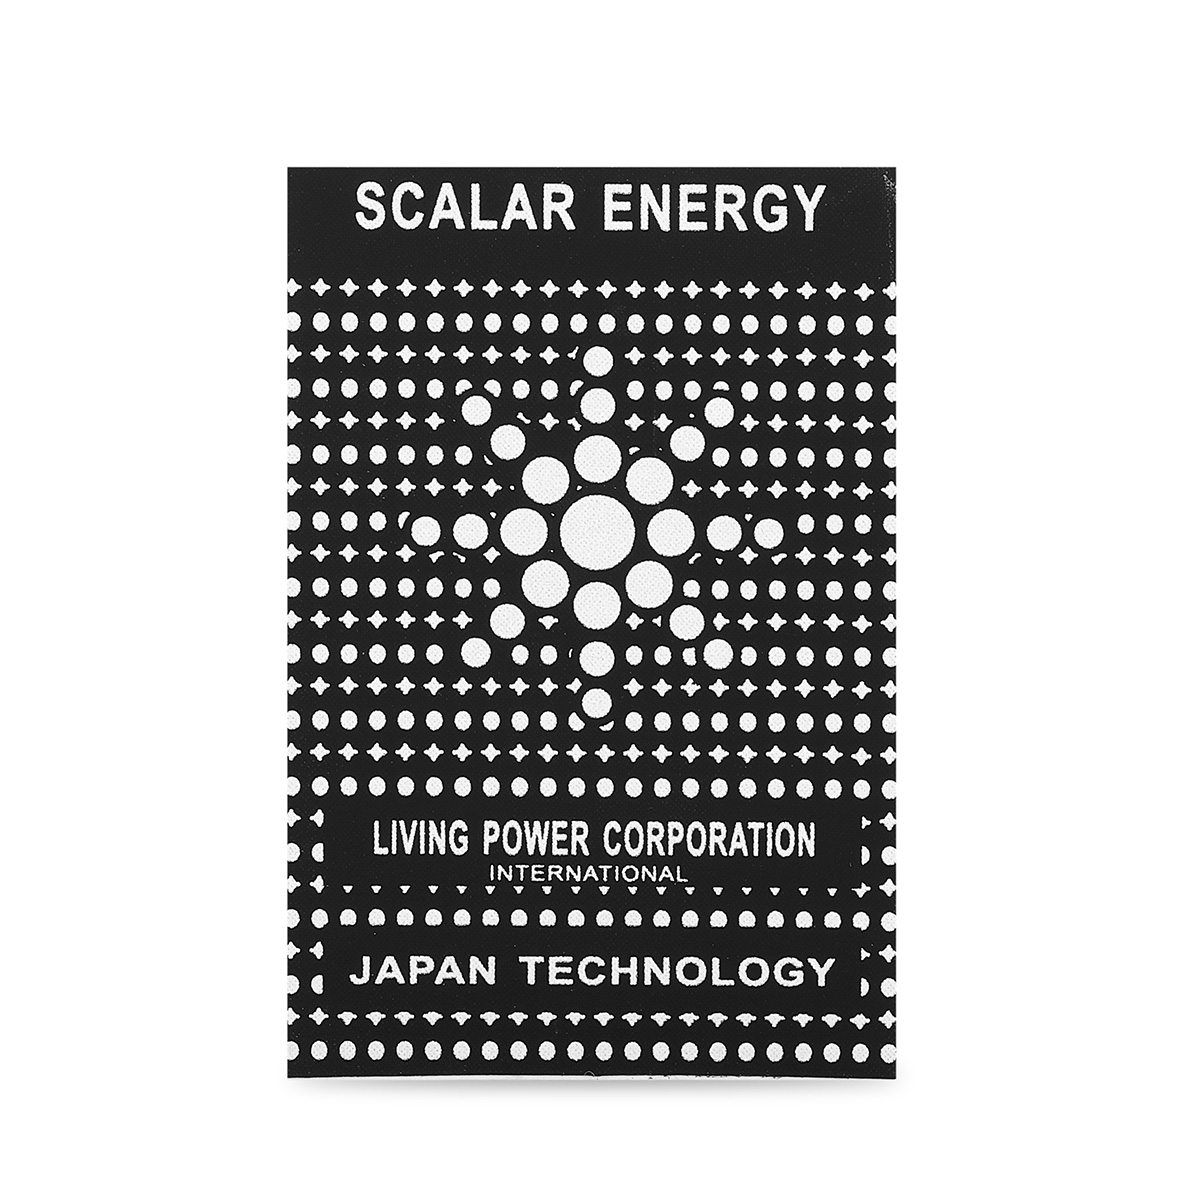 Details about Anti-radiation Shield EMF Protection Technology EMR Scalar  Energy Phone Sticker